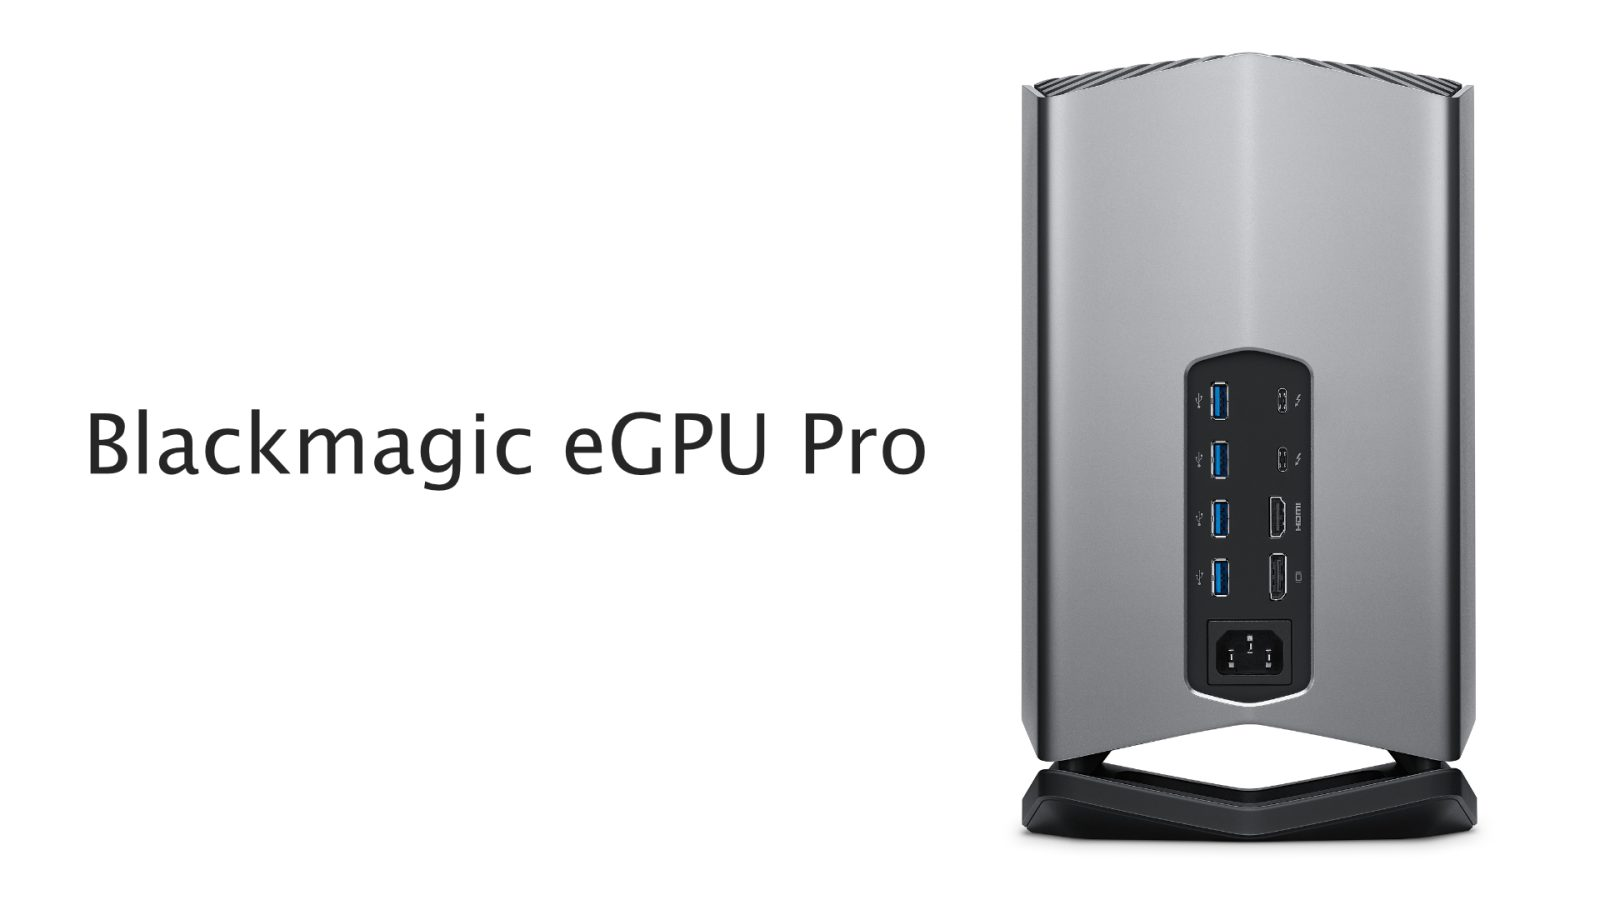 Blackmagic Design launches new eGPU Pro with Radeon RX Vega 56